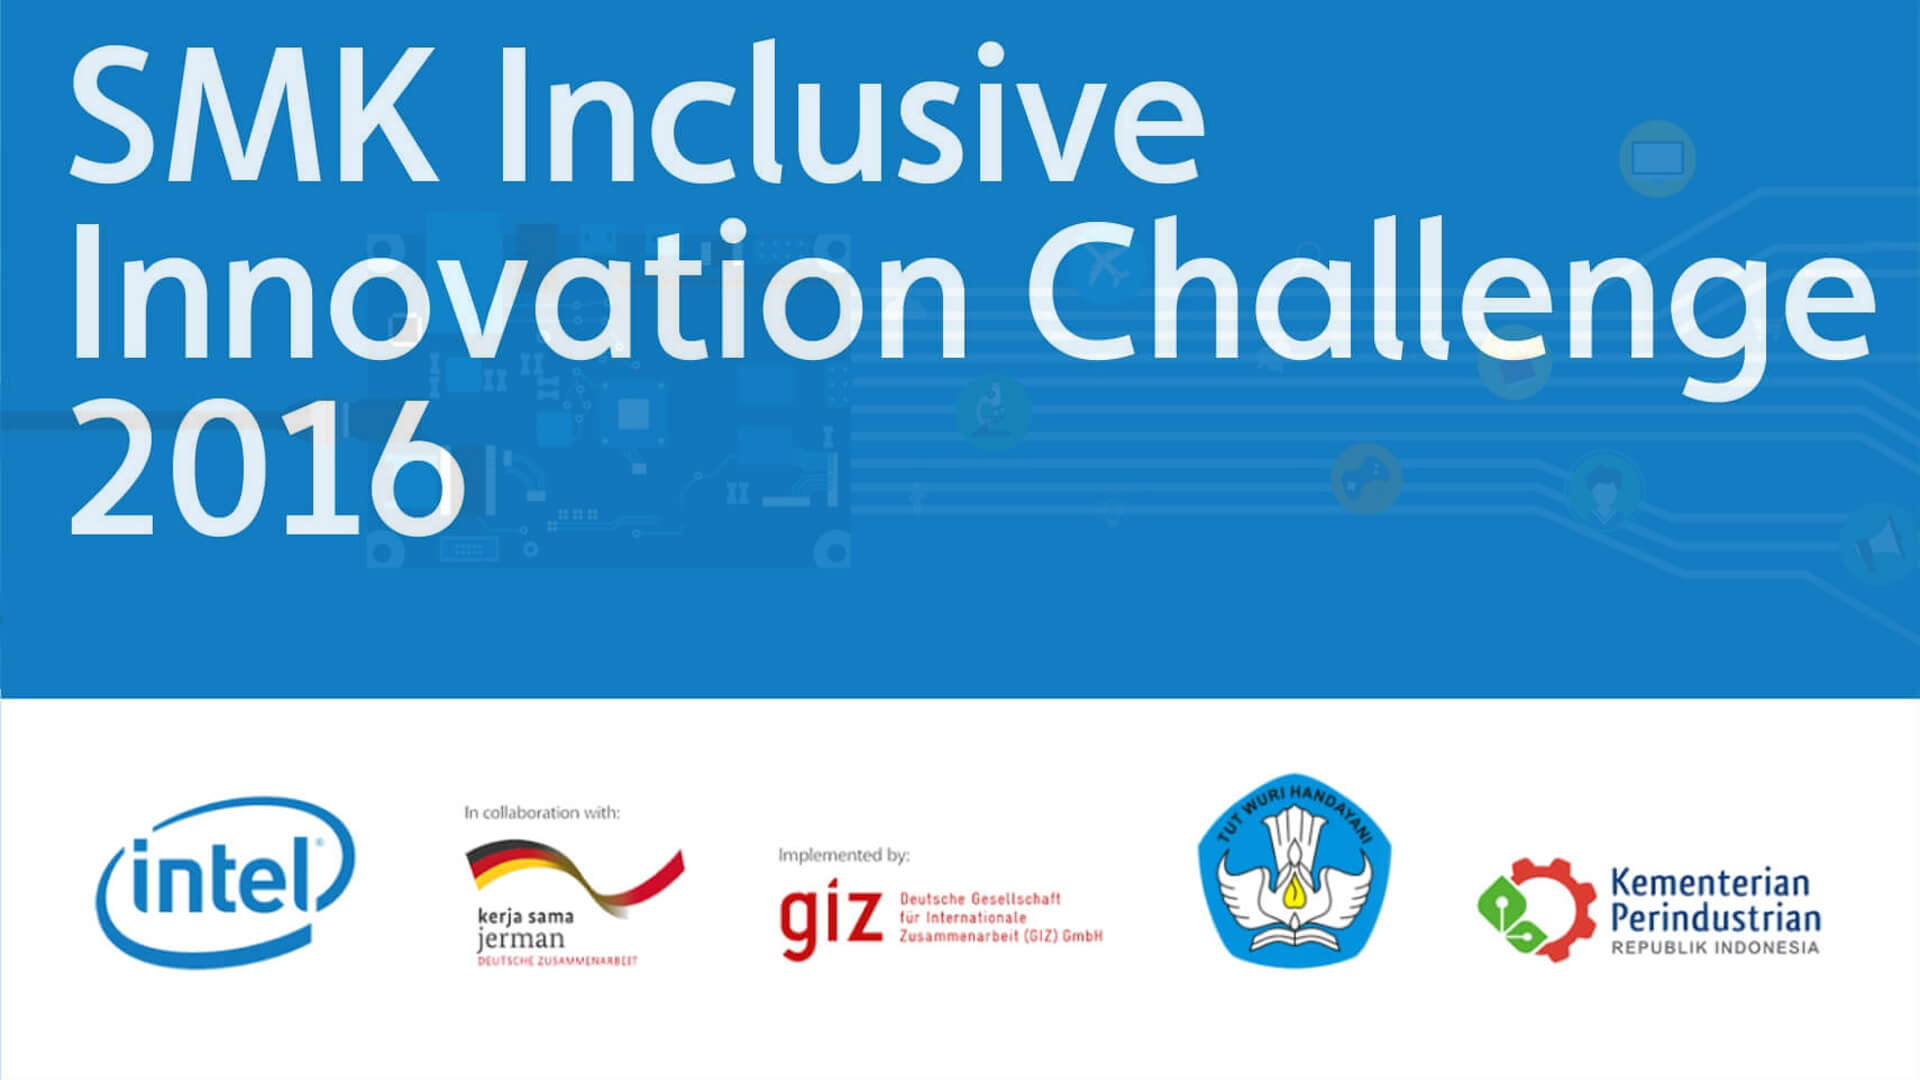 SMK Inclusive Innovation Challenge